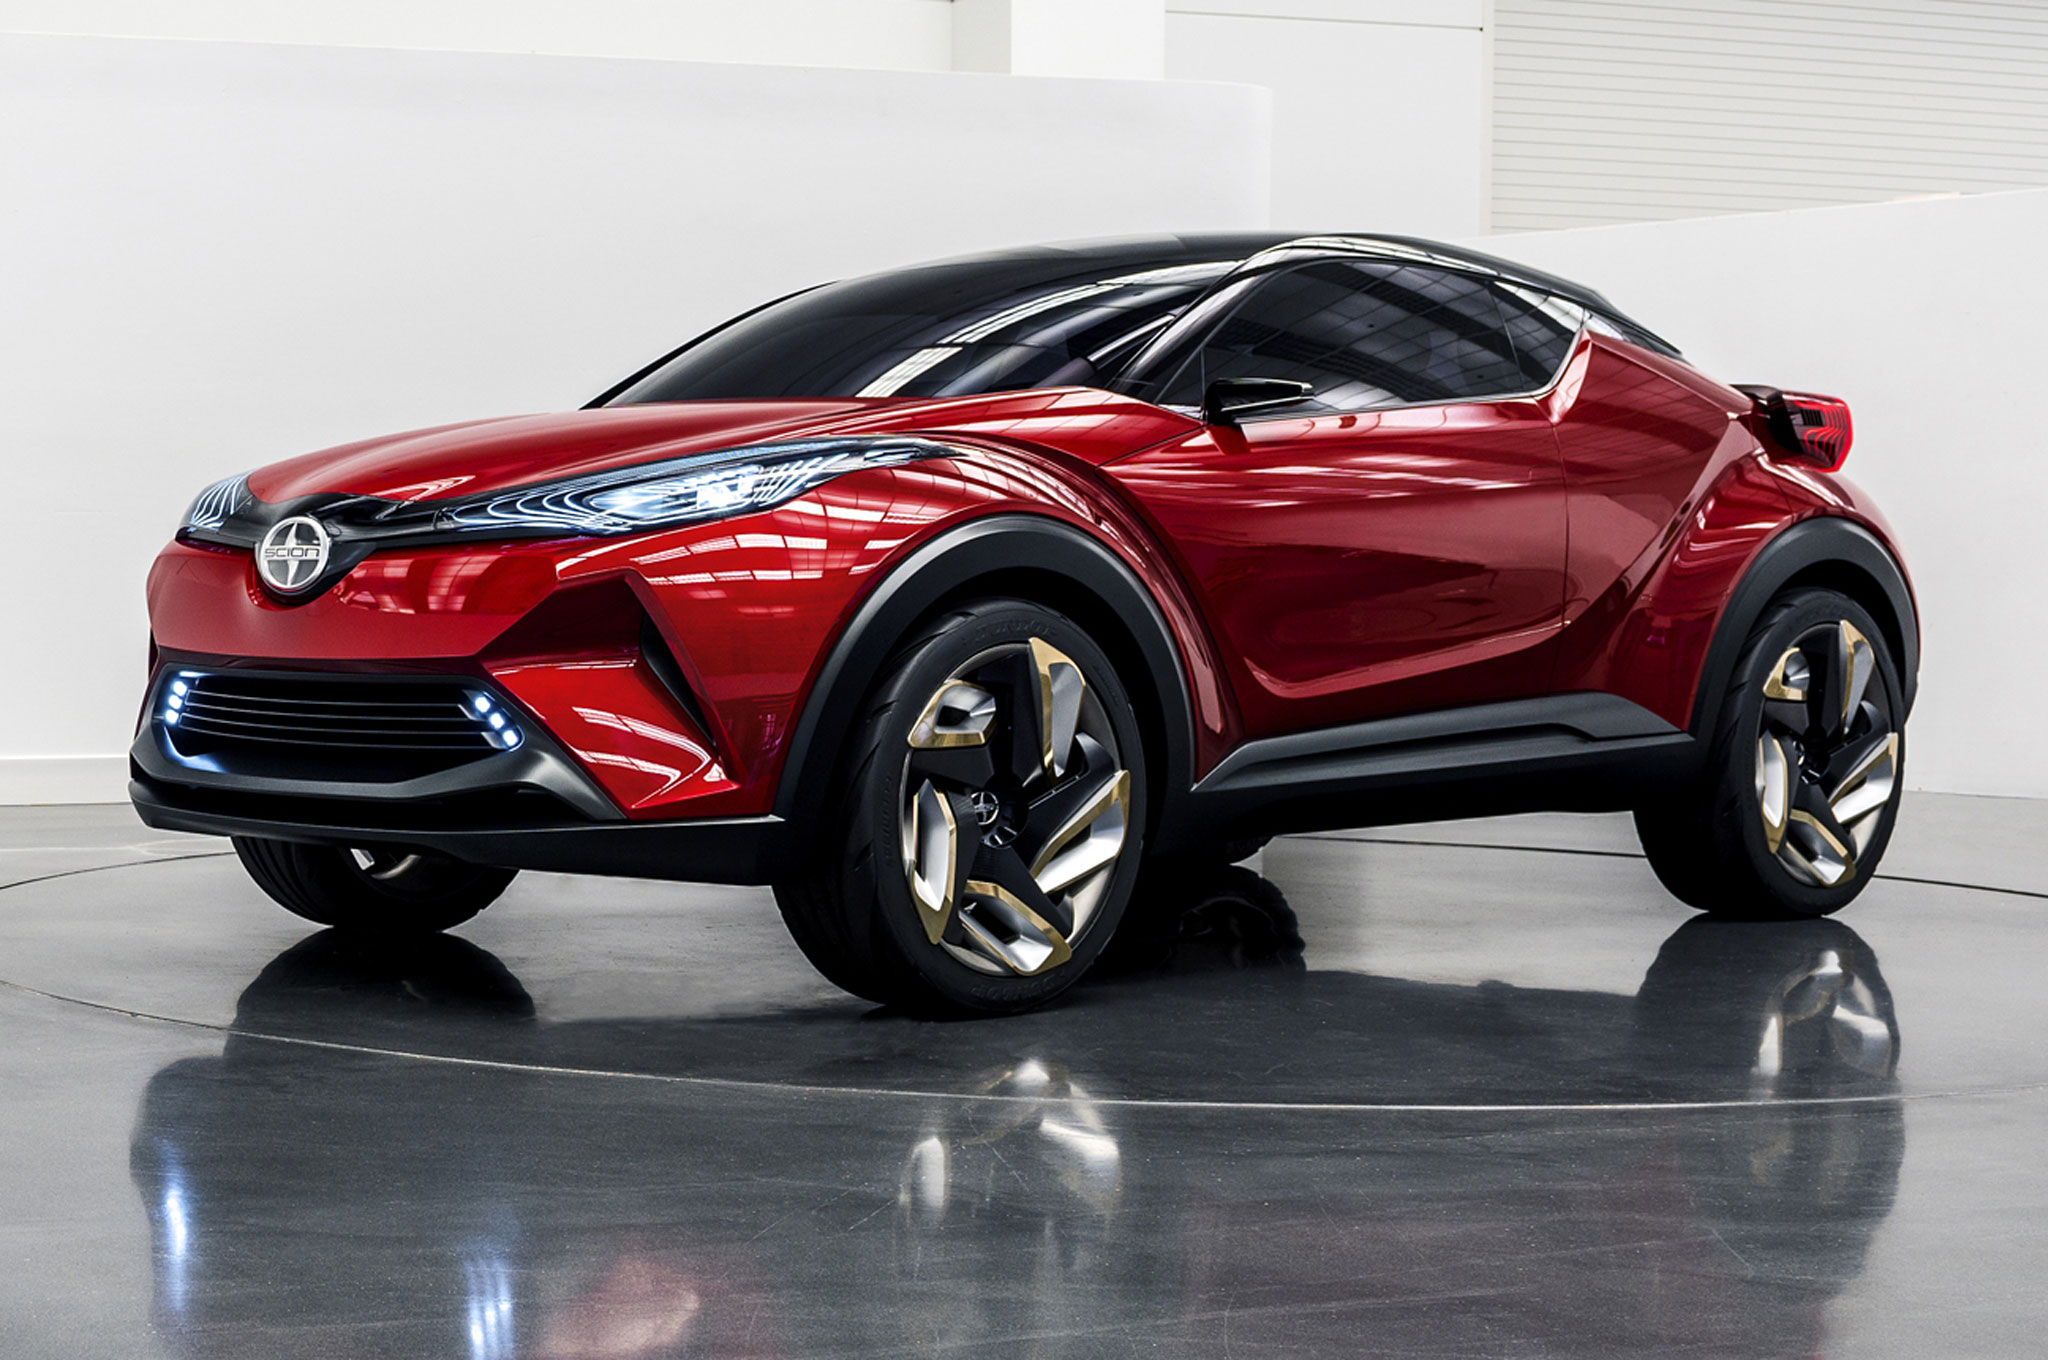 modified toyota c hr crossover heading to 24 hours of. Black Bedroom Furniture Sets. Home Design Ideas